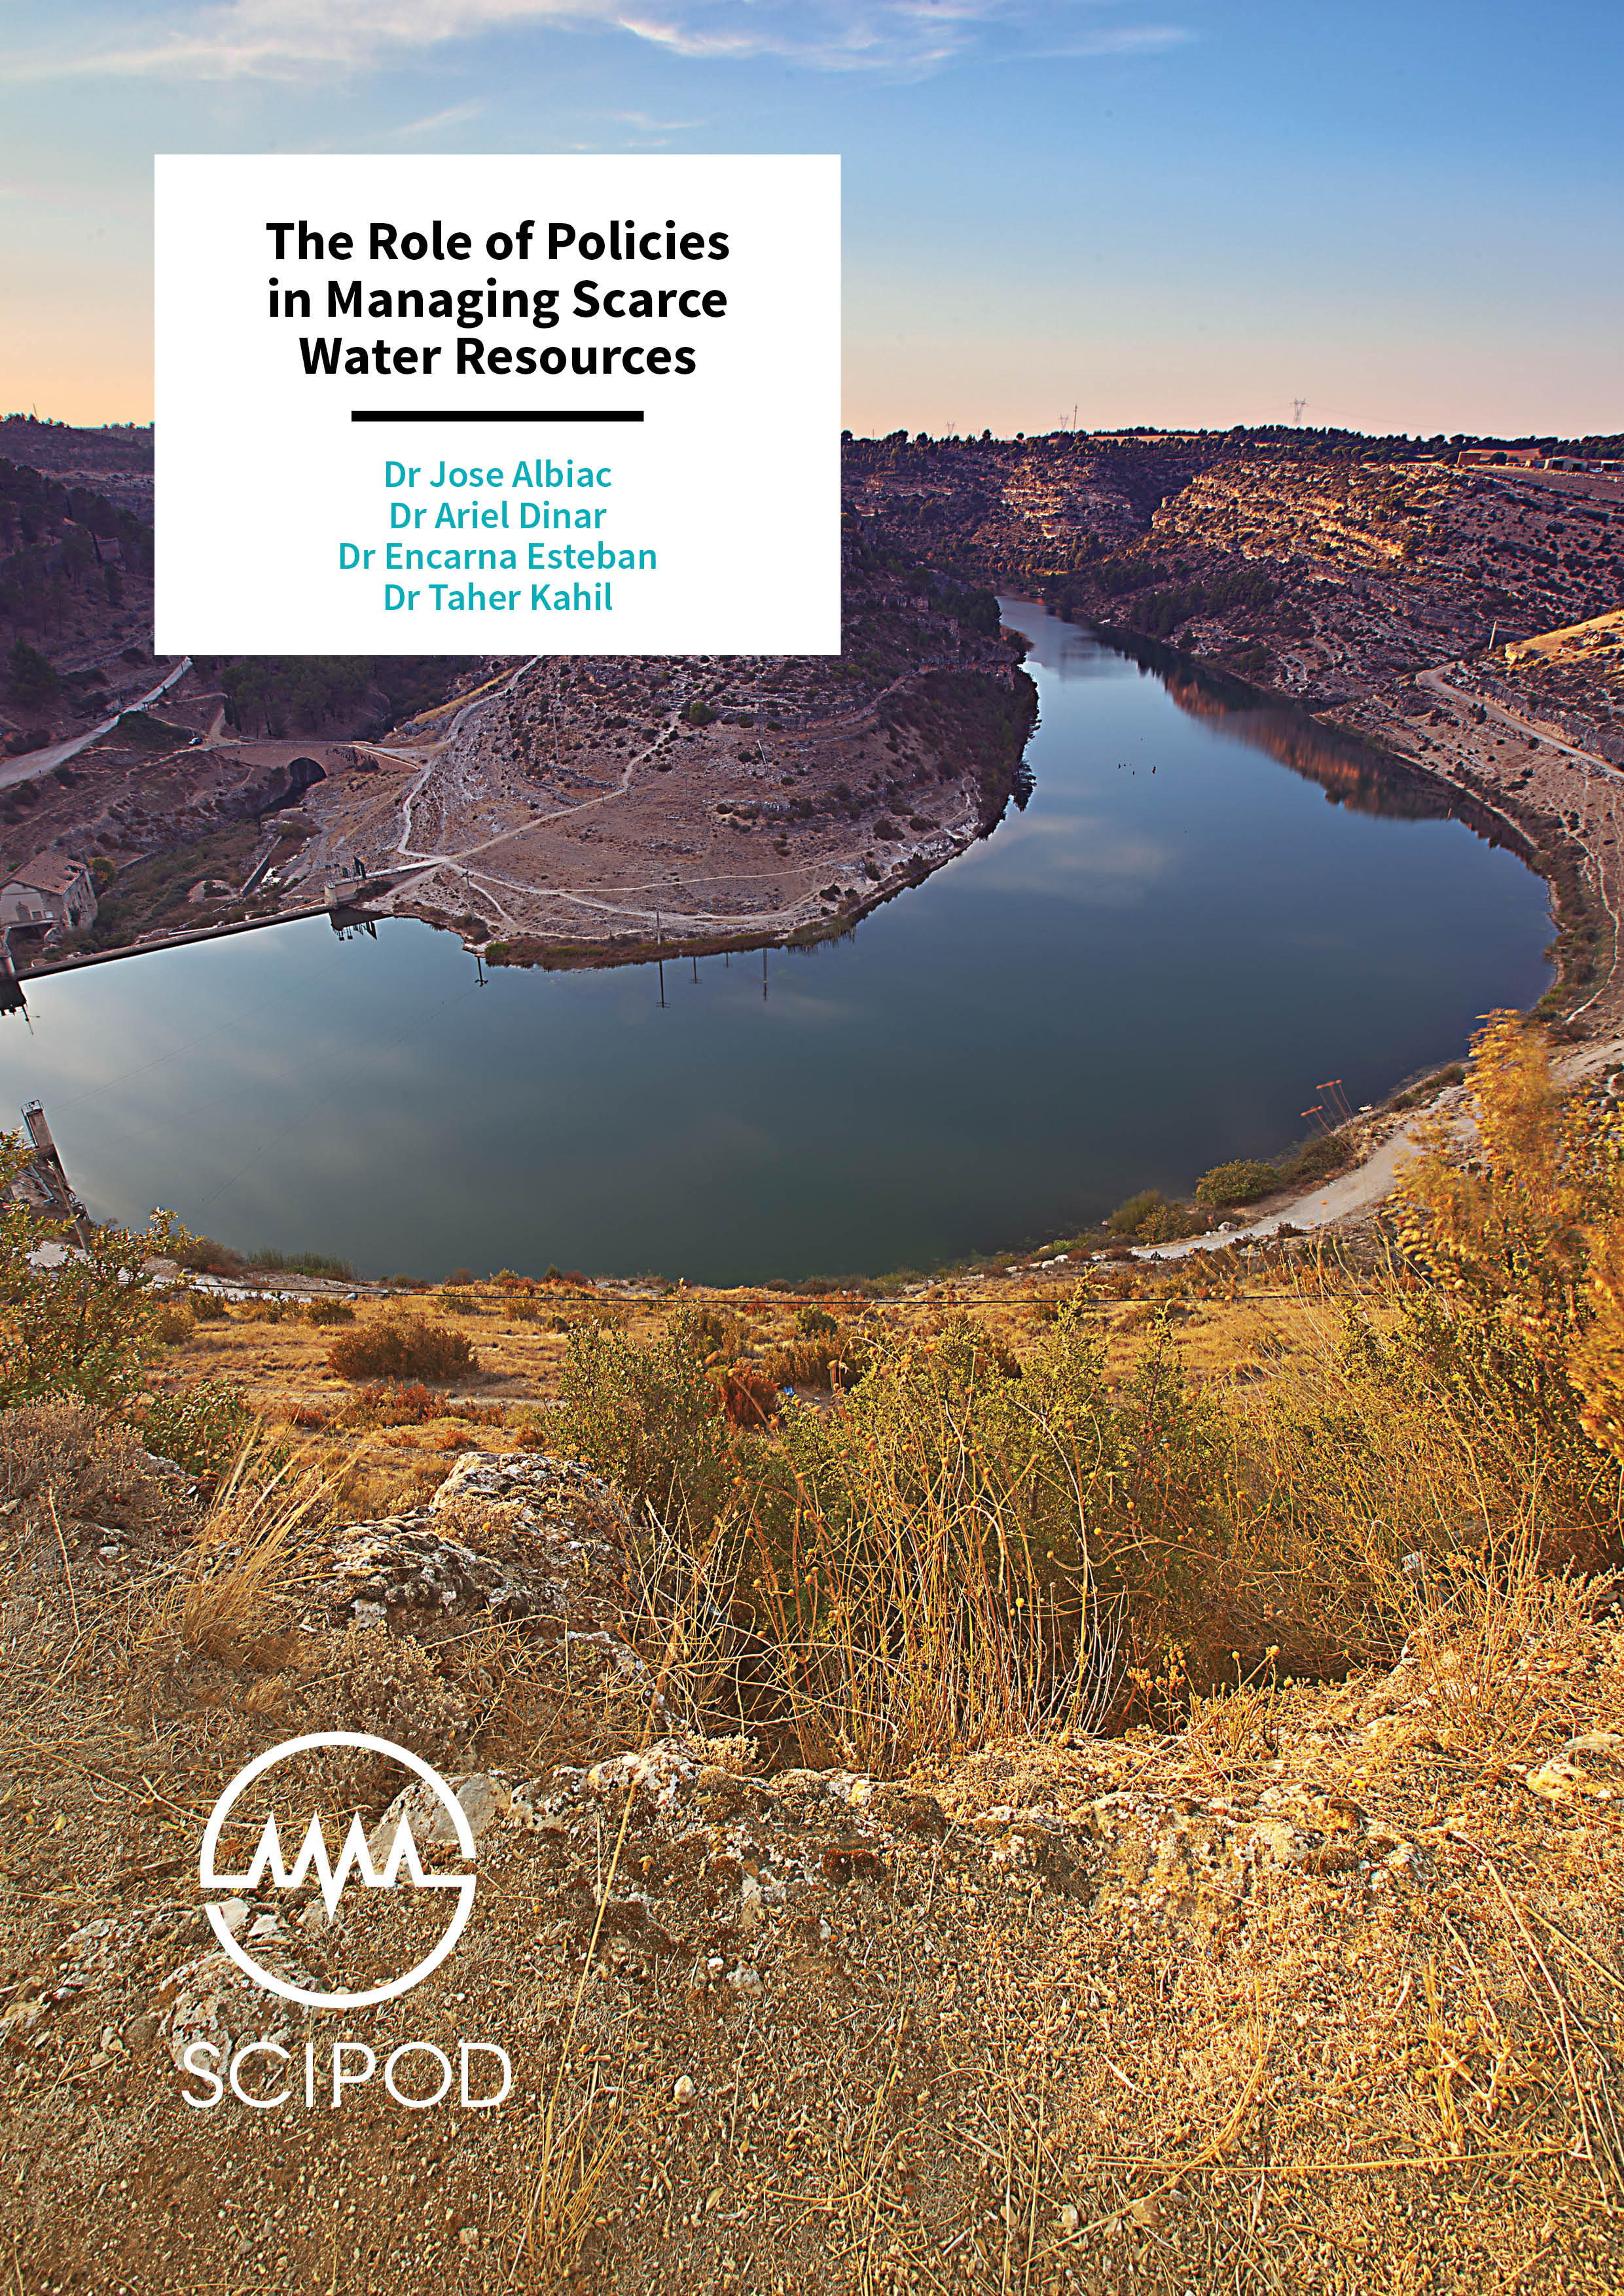 The Role of Policies in Managing Scarce Water Resources – Drs Jose Albiac, Ariel Dinar, Encarna Esteban & Dr Taher Kahil